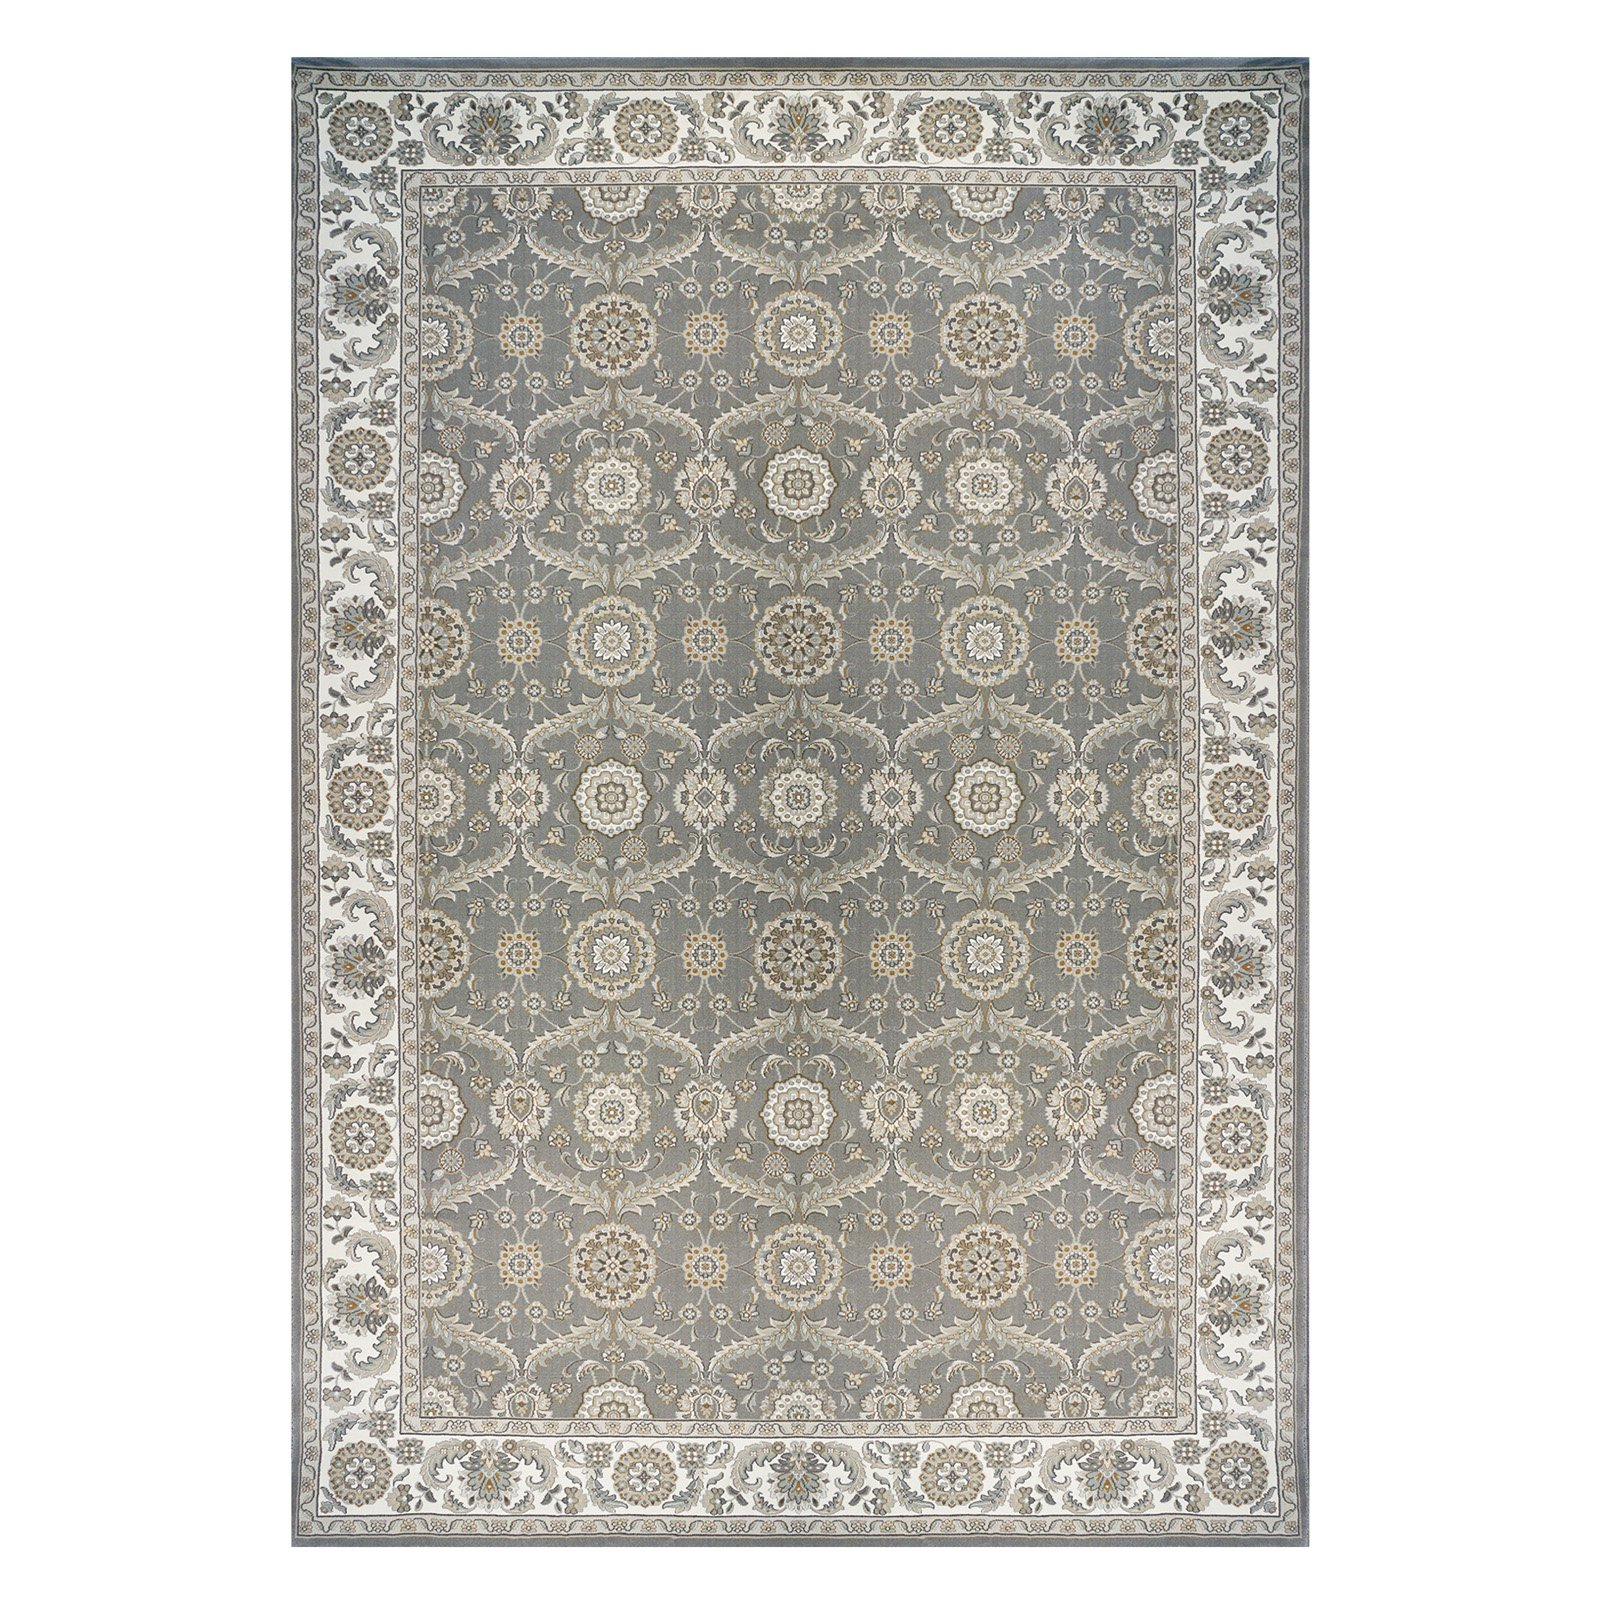 Avenue 33 Majestic Liverpool Area Rug